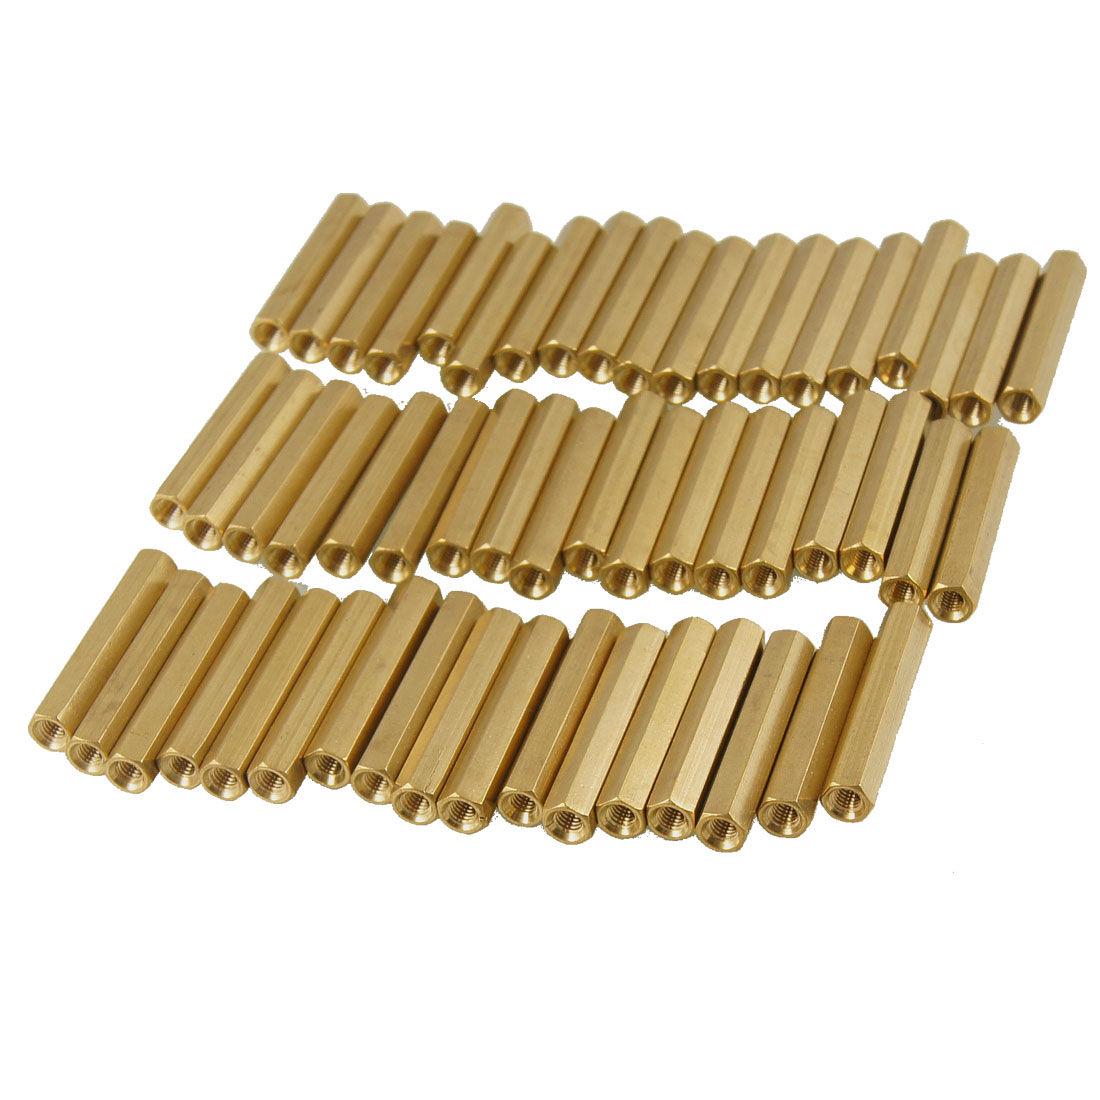 50 Pcs M3X28mm Brass Hex Hexagonal Female Thread PCB Standoff Spacers